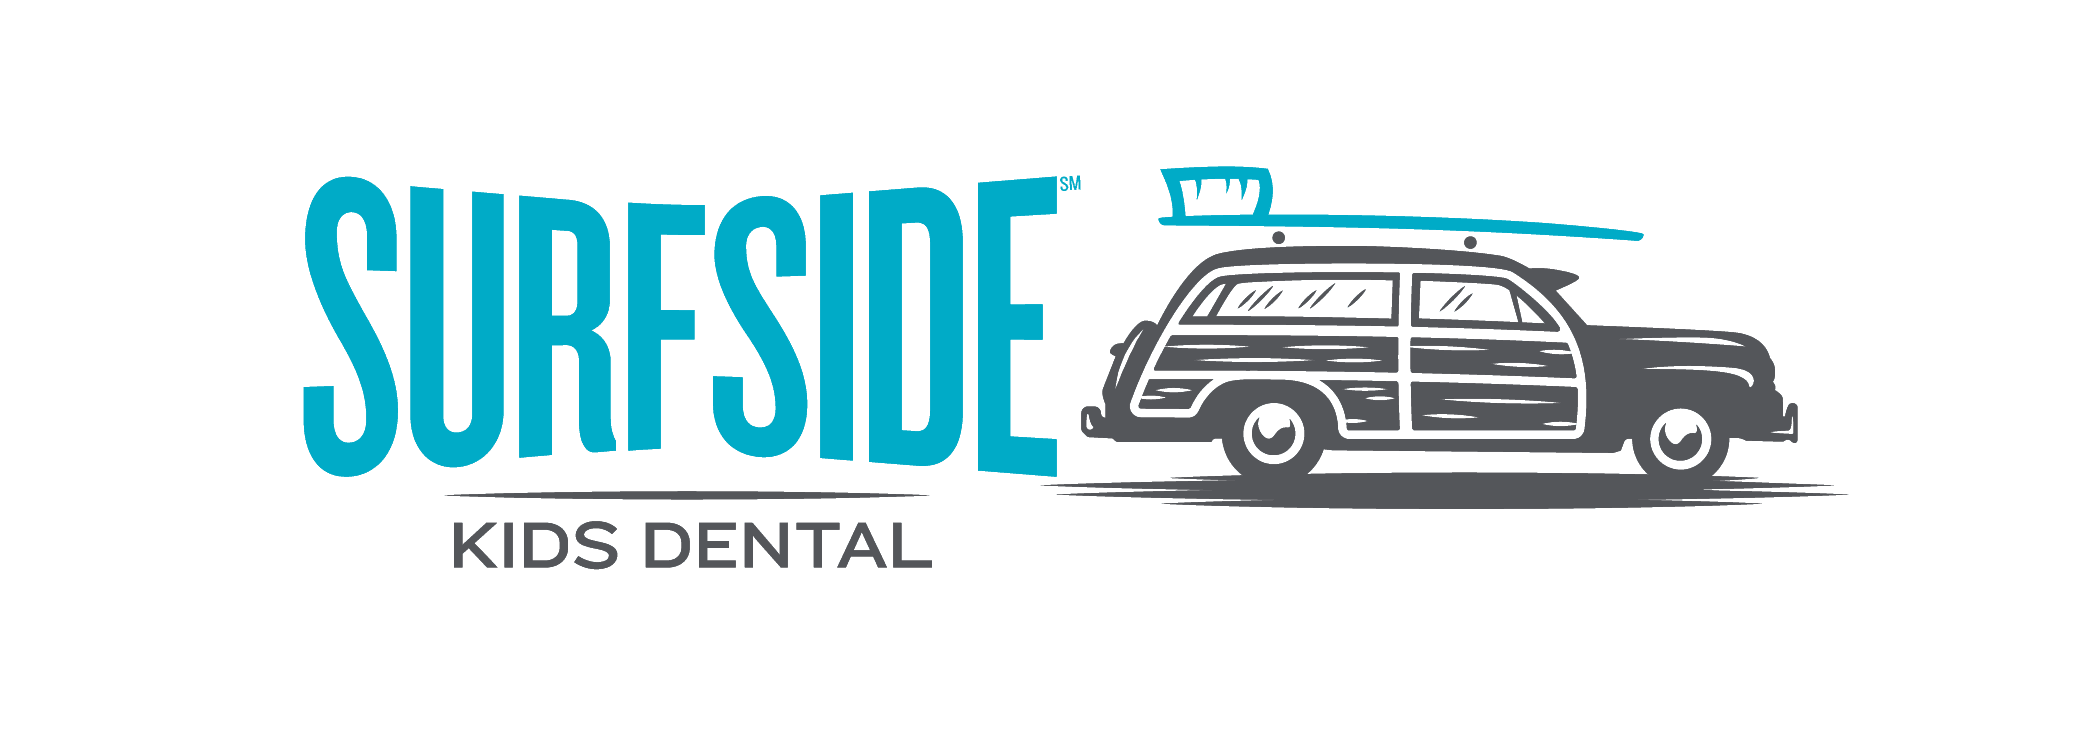 Best Kids Dentist in Northern California! Surf, Smile, Be Happy.